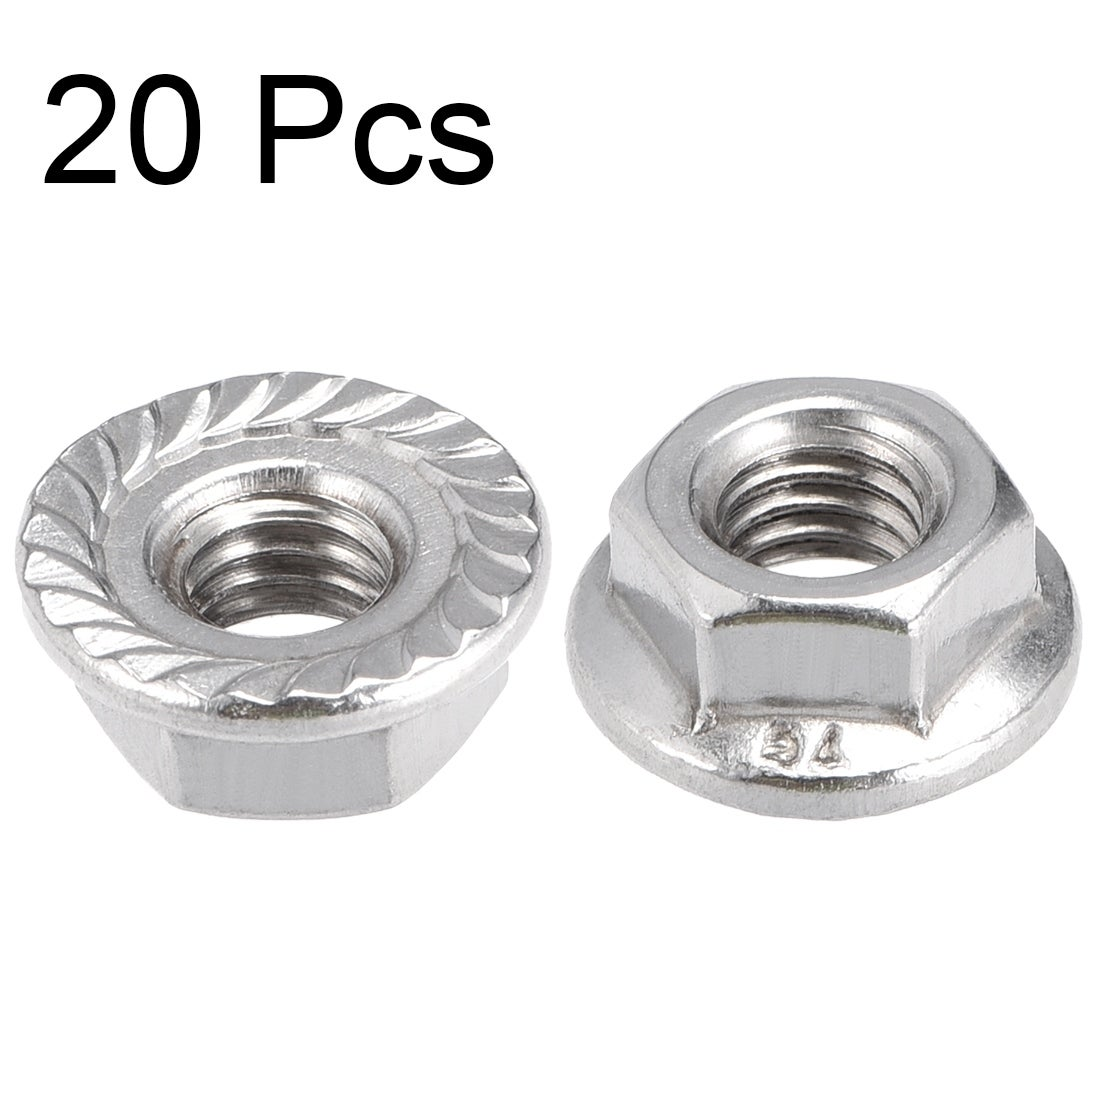 1//4-14 x 1 Sheet Metal Screw Hex Washer Head Phillips//Slotted Combo Type AB Low Carbon Steel Zinc Plated Pk 100